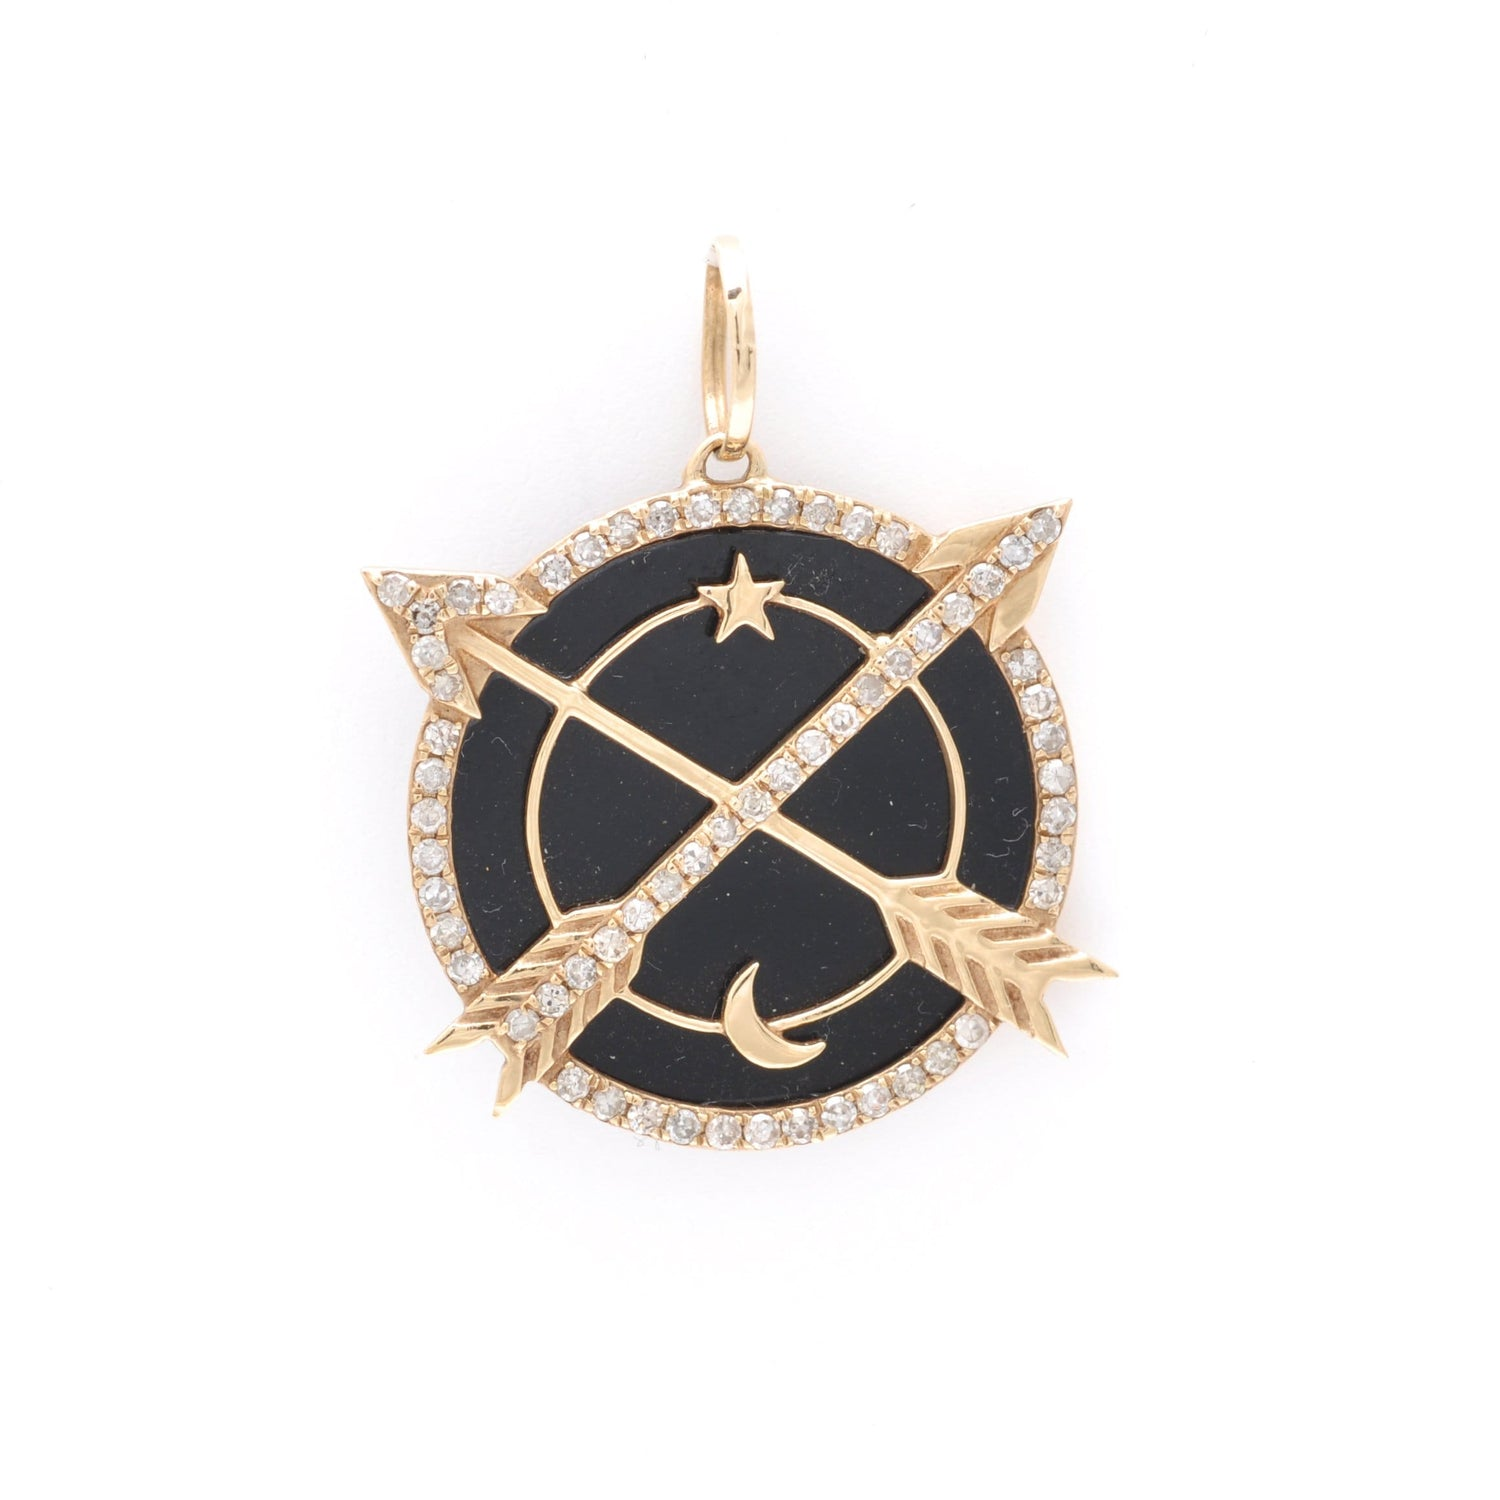 Crossed Arrows Black Enamel Medallion